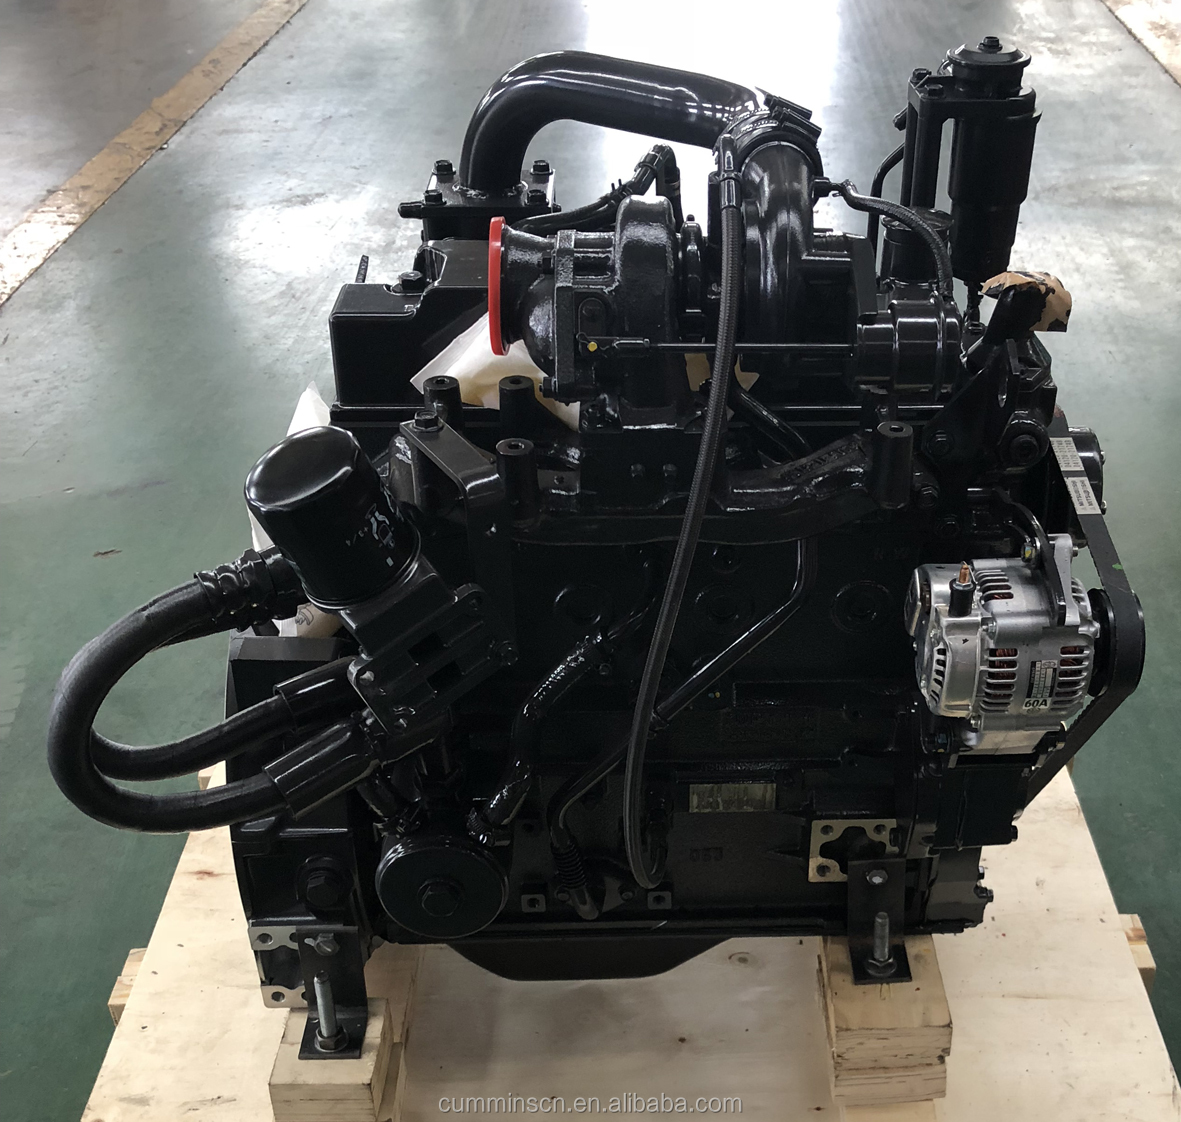 The B3.3 engine assembly of Cummins diesel engine Engine for excavator